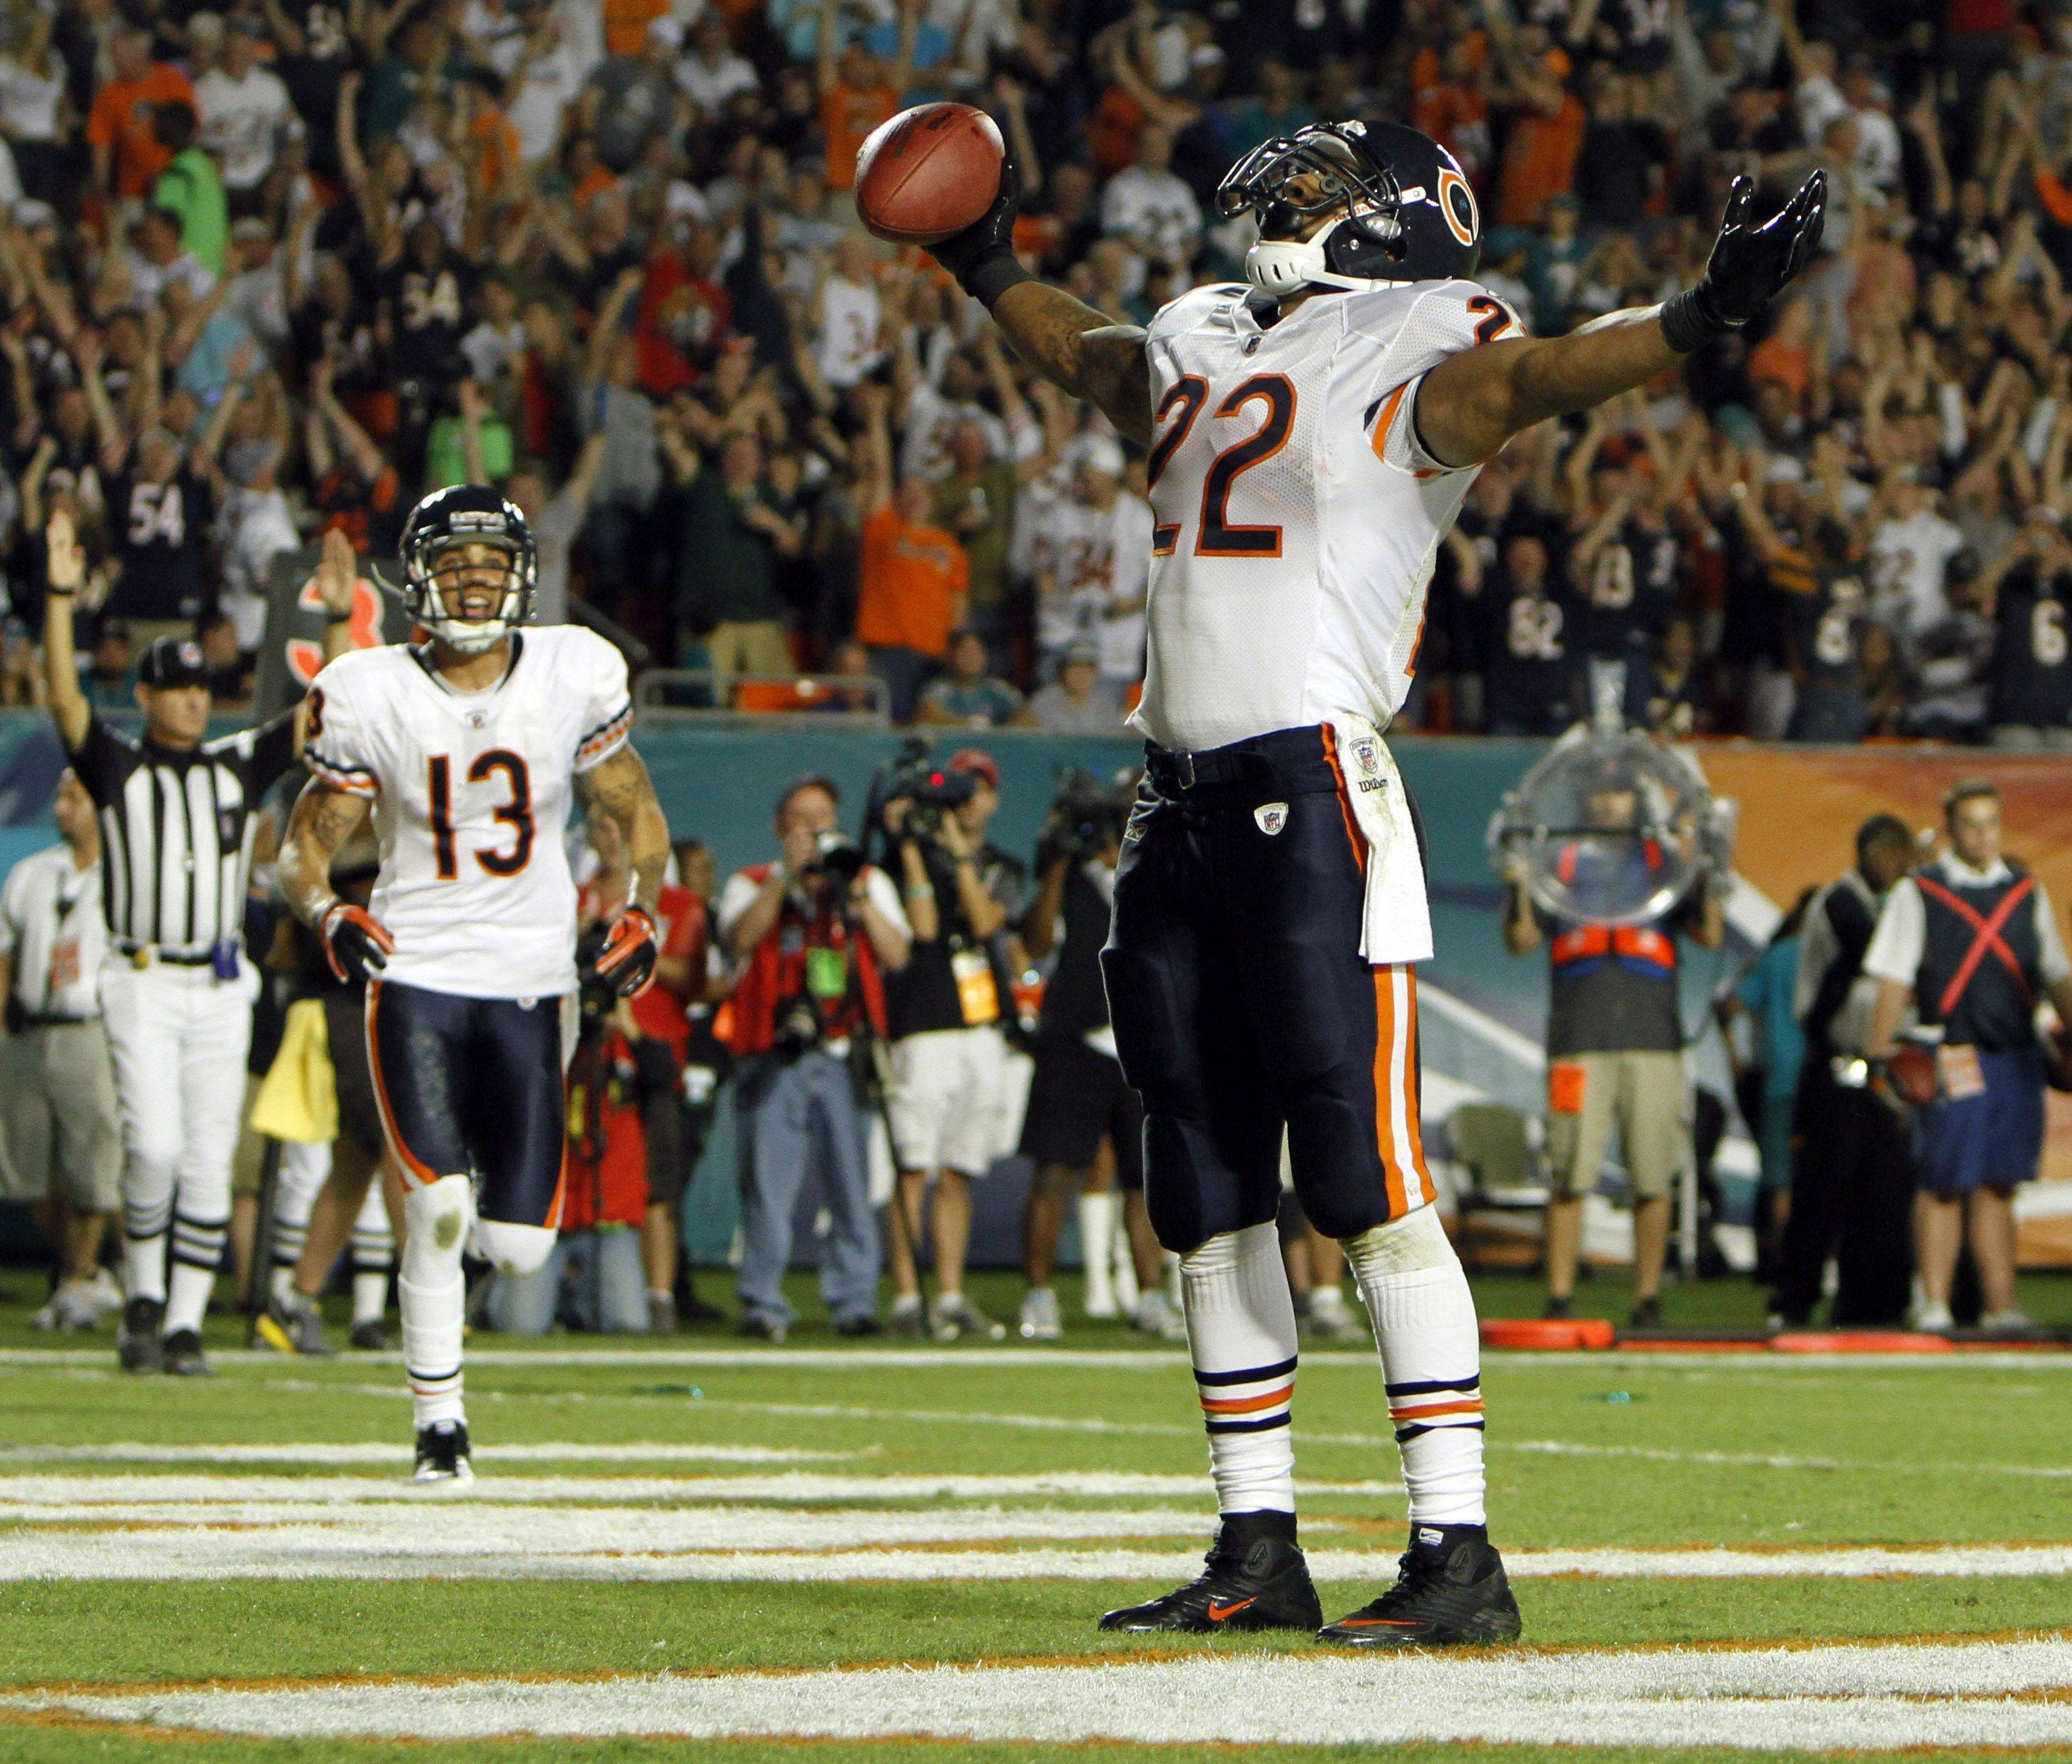 Chicago Bears running back Matt Forte reacts after scoring a touchdown during the third quarter .